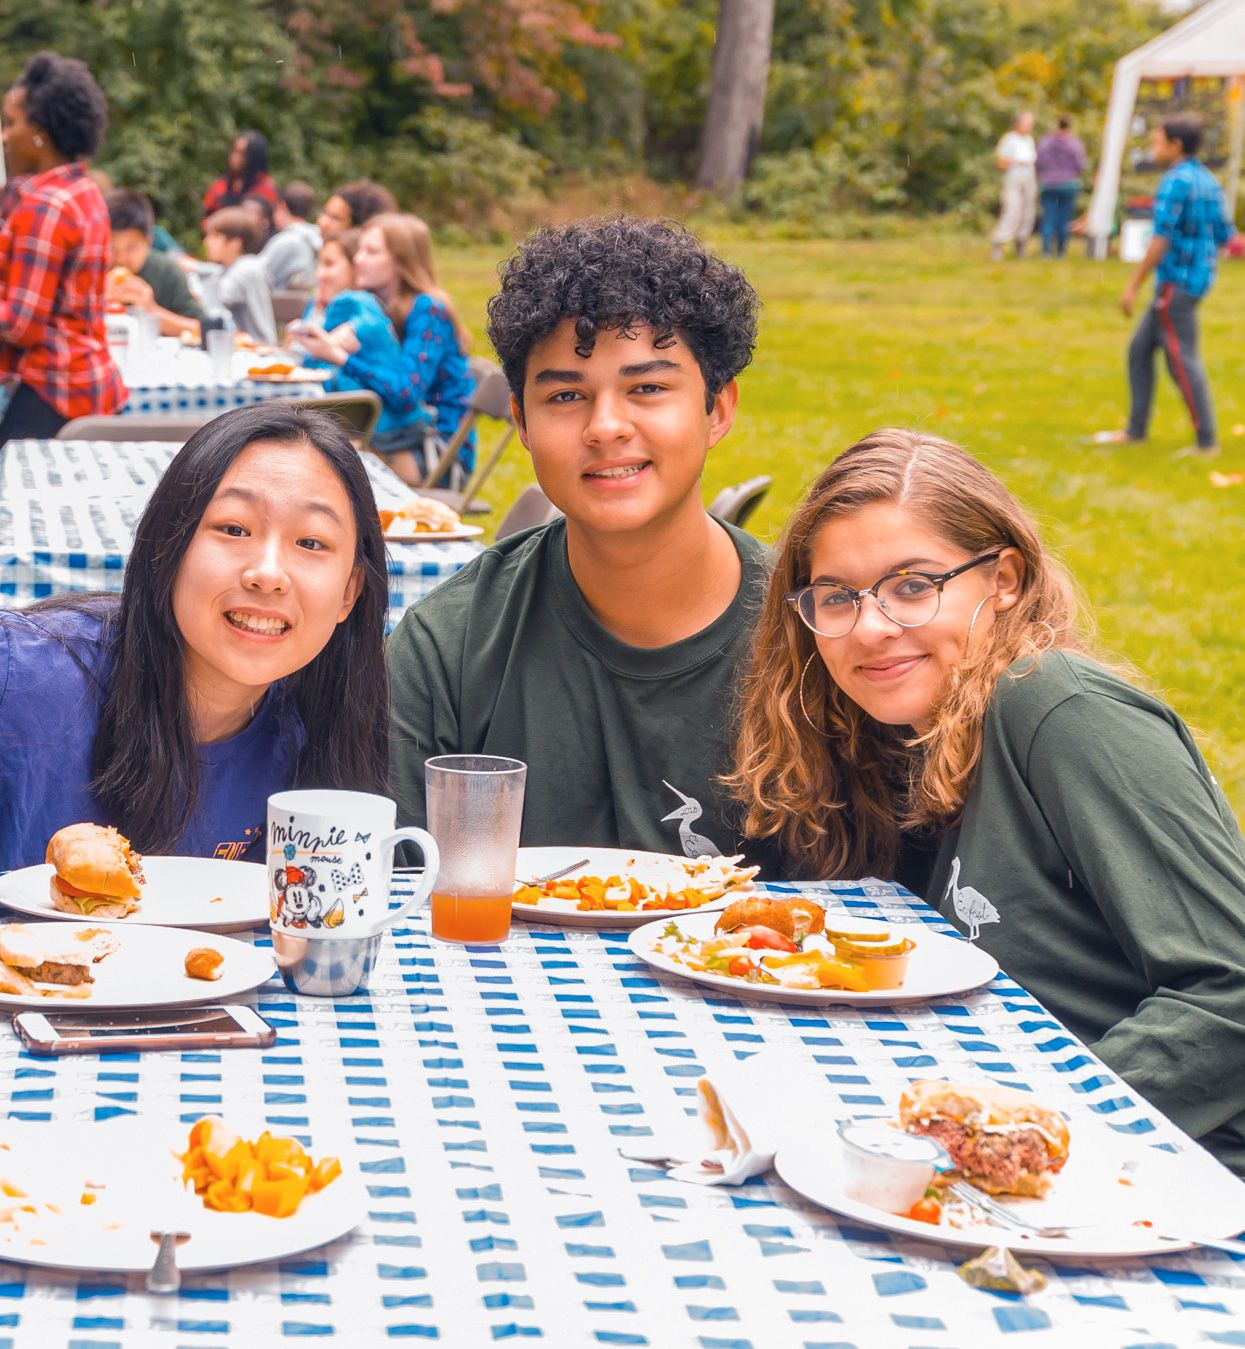 students eating at a picnic table